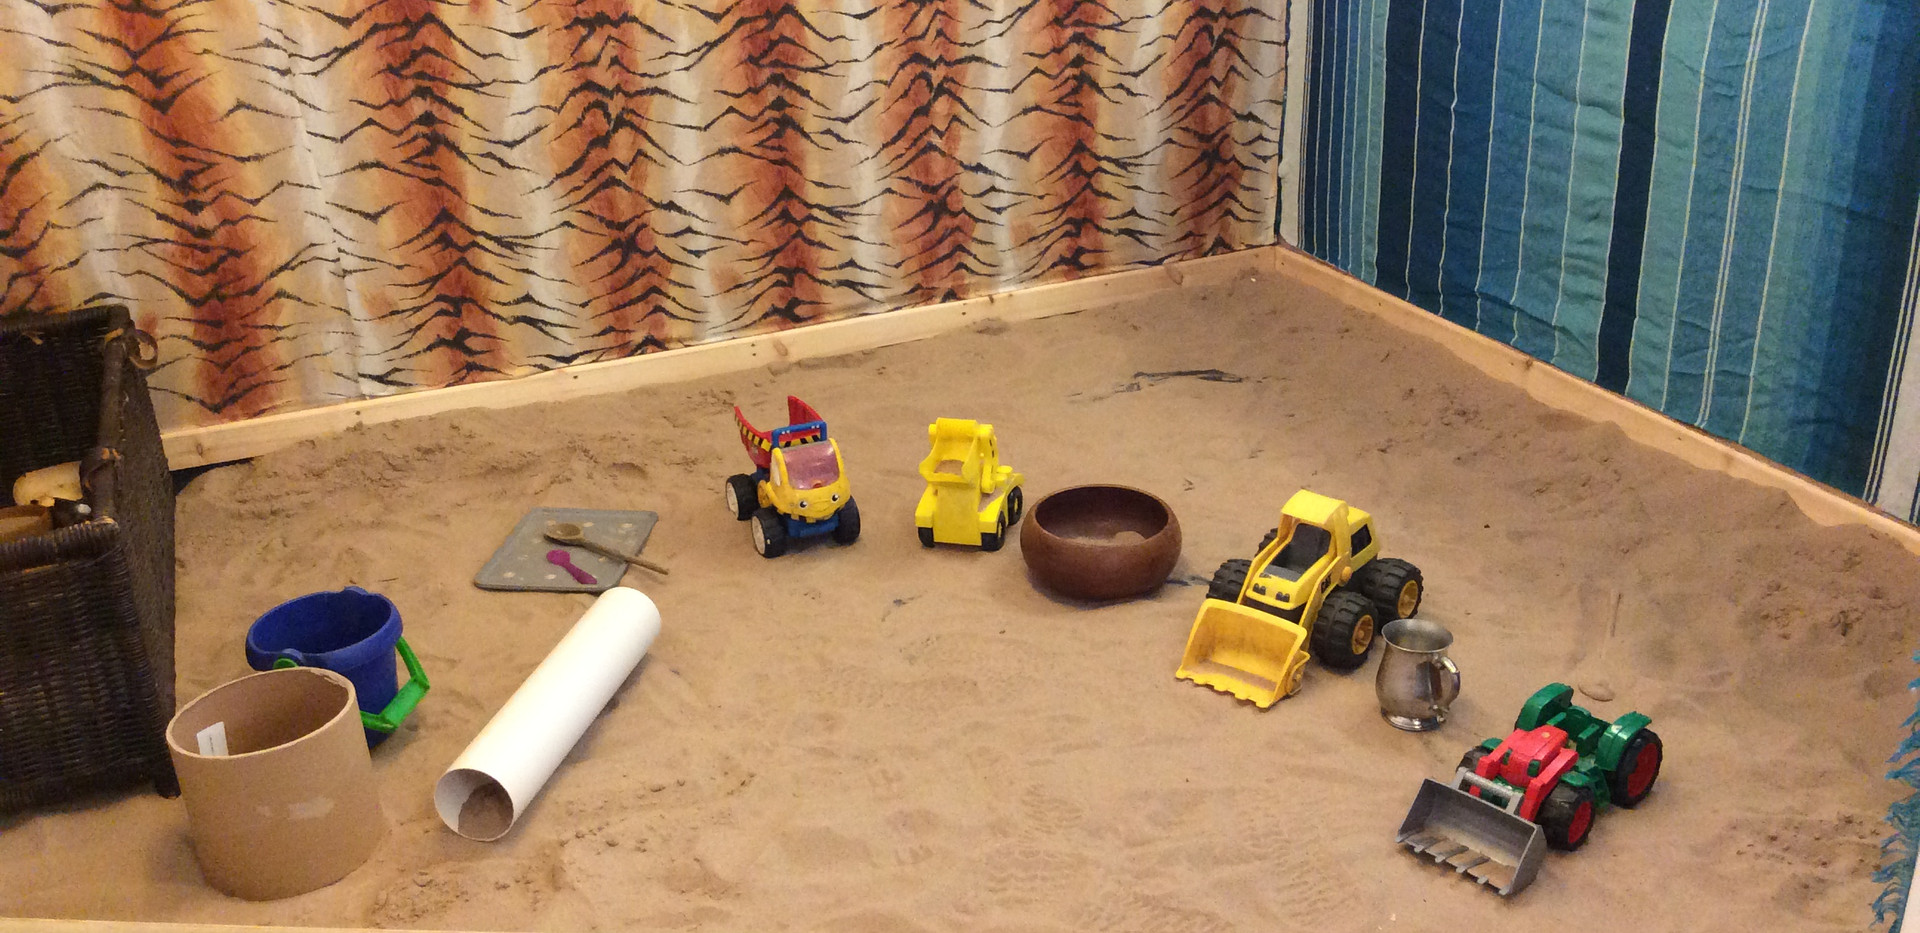 Longworth_Preschool_Sandpit_Toys.JPG